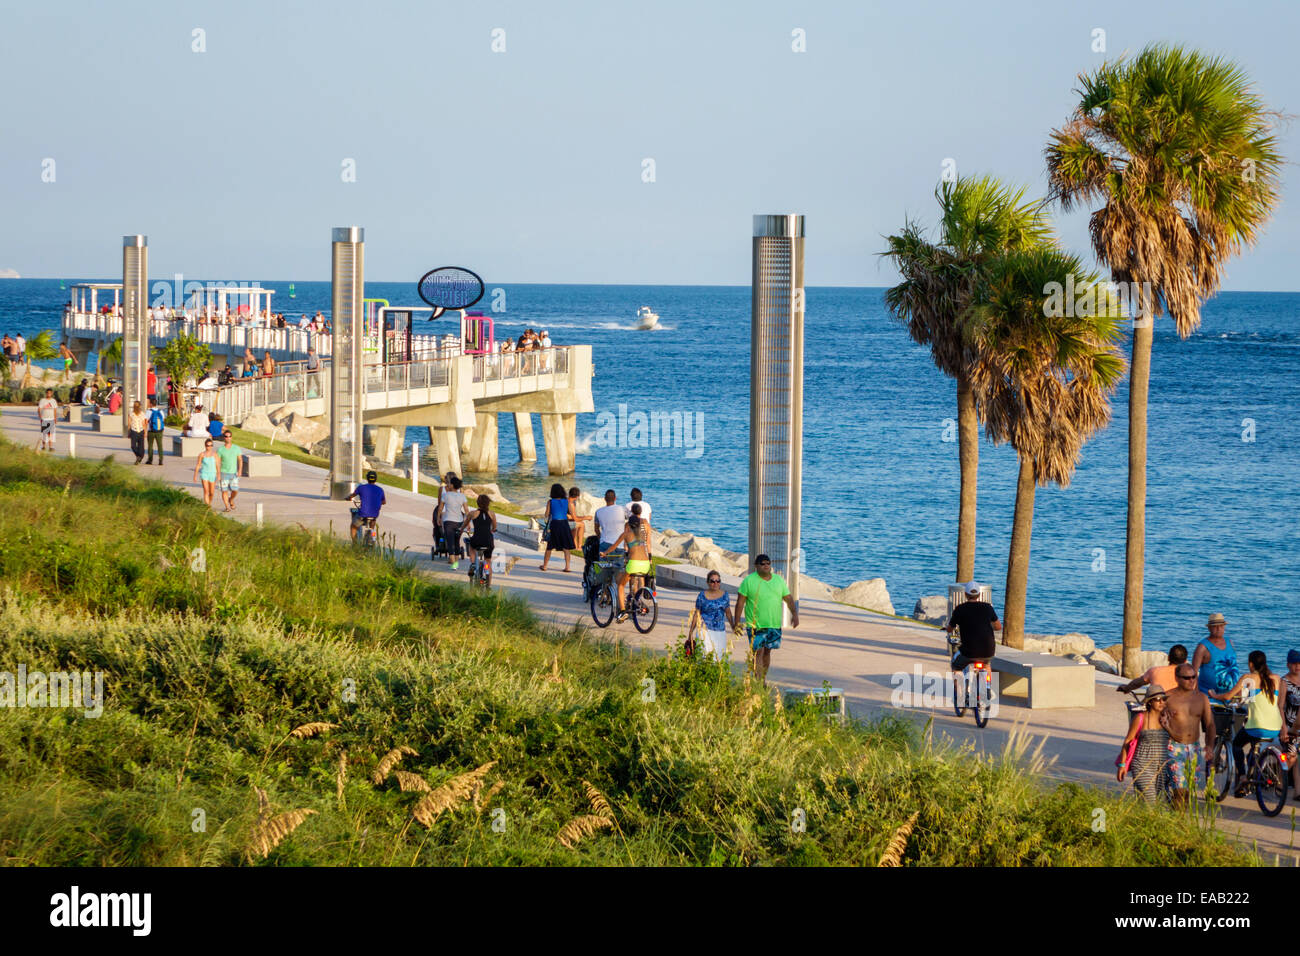 28 miami beach florida pier one things to do in for Miami fishing piers